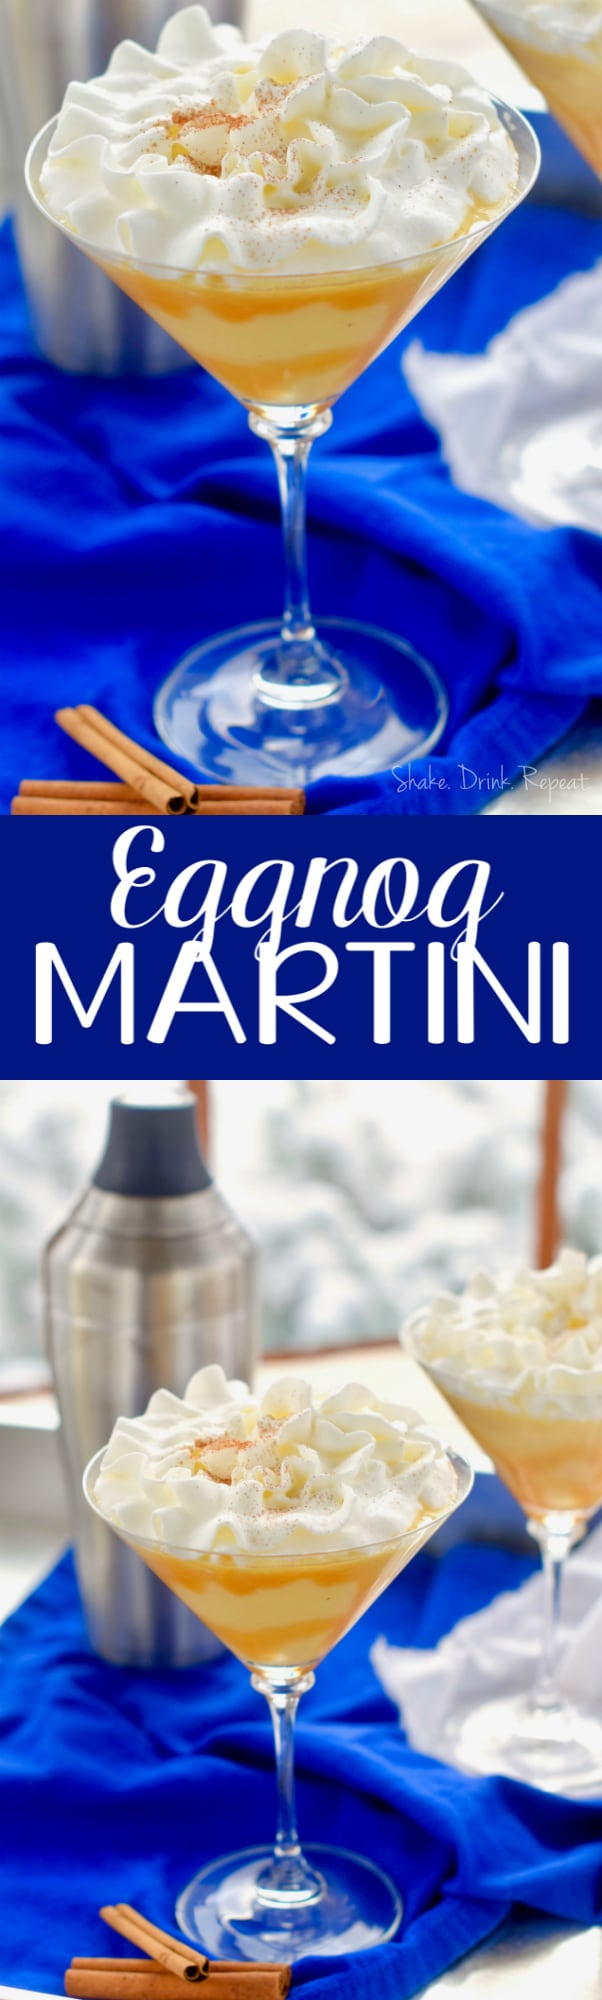 This Eggnog Martini is the perfect holiday drink!  This cocktail will make your Christmas merry!